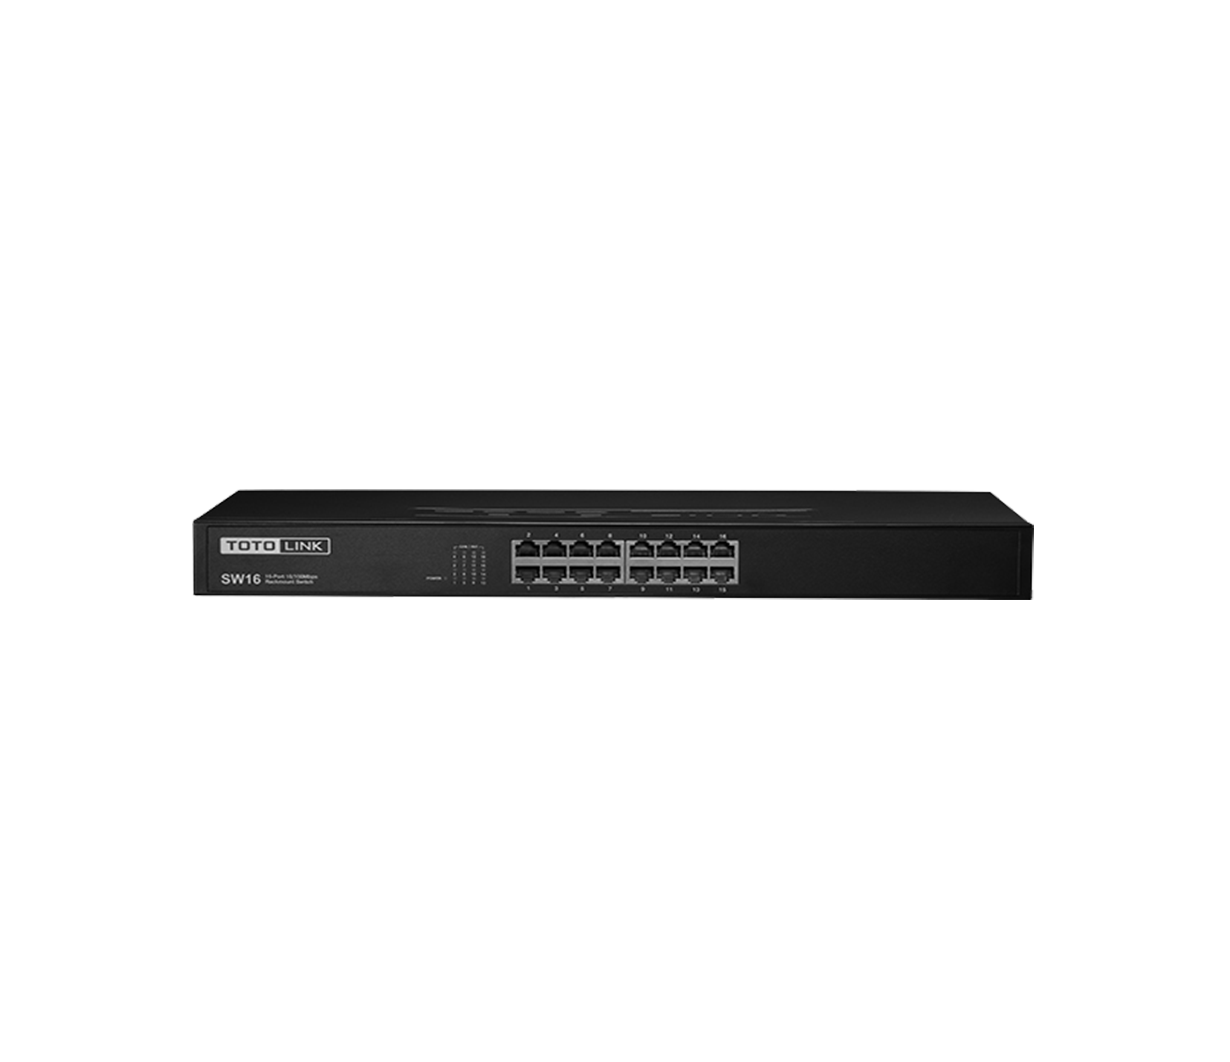 SWITCH TOTOLINK SW16 16 CỔNG TỐC ĐỘ...